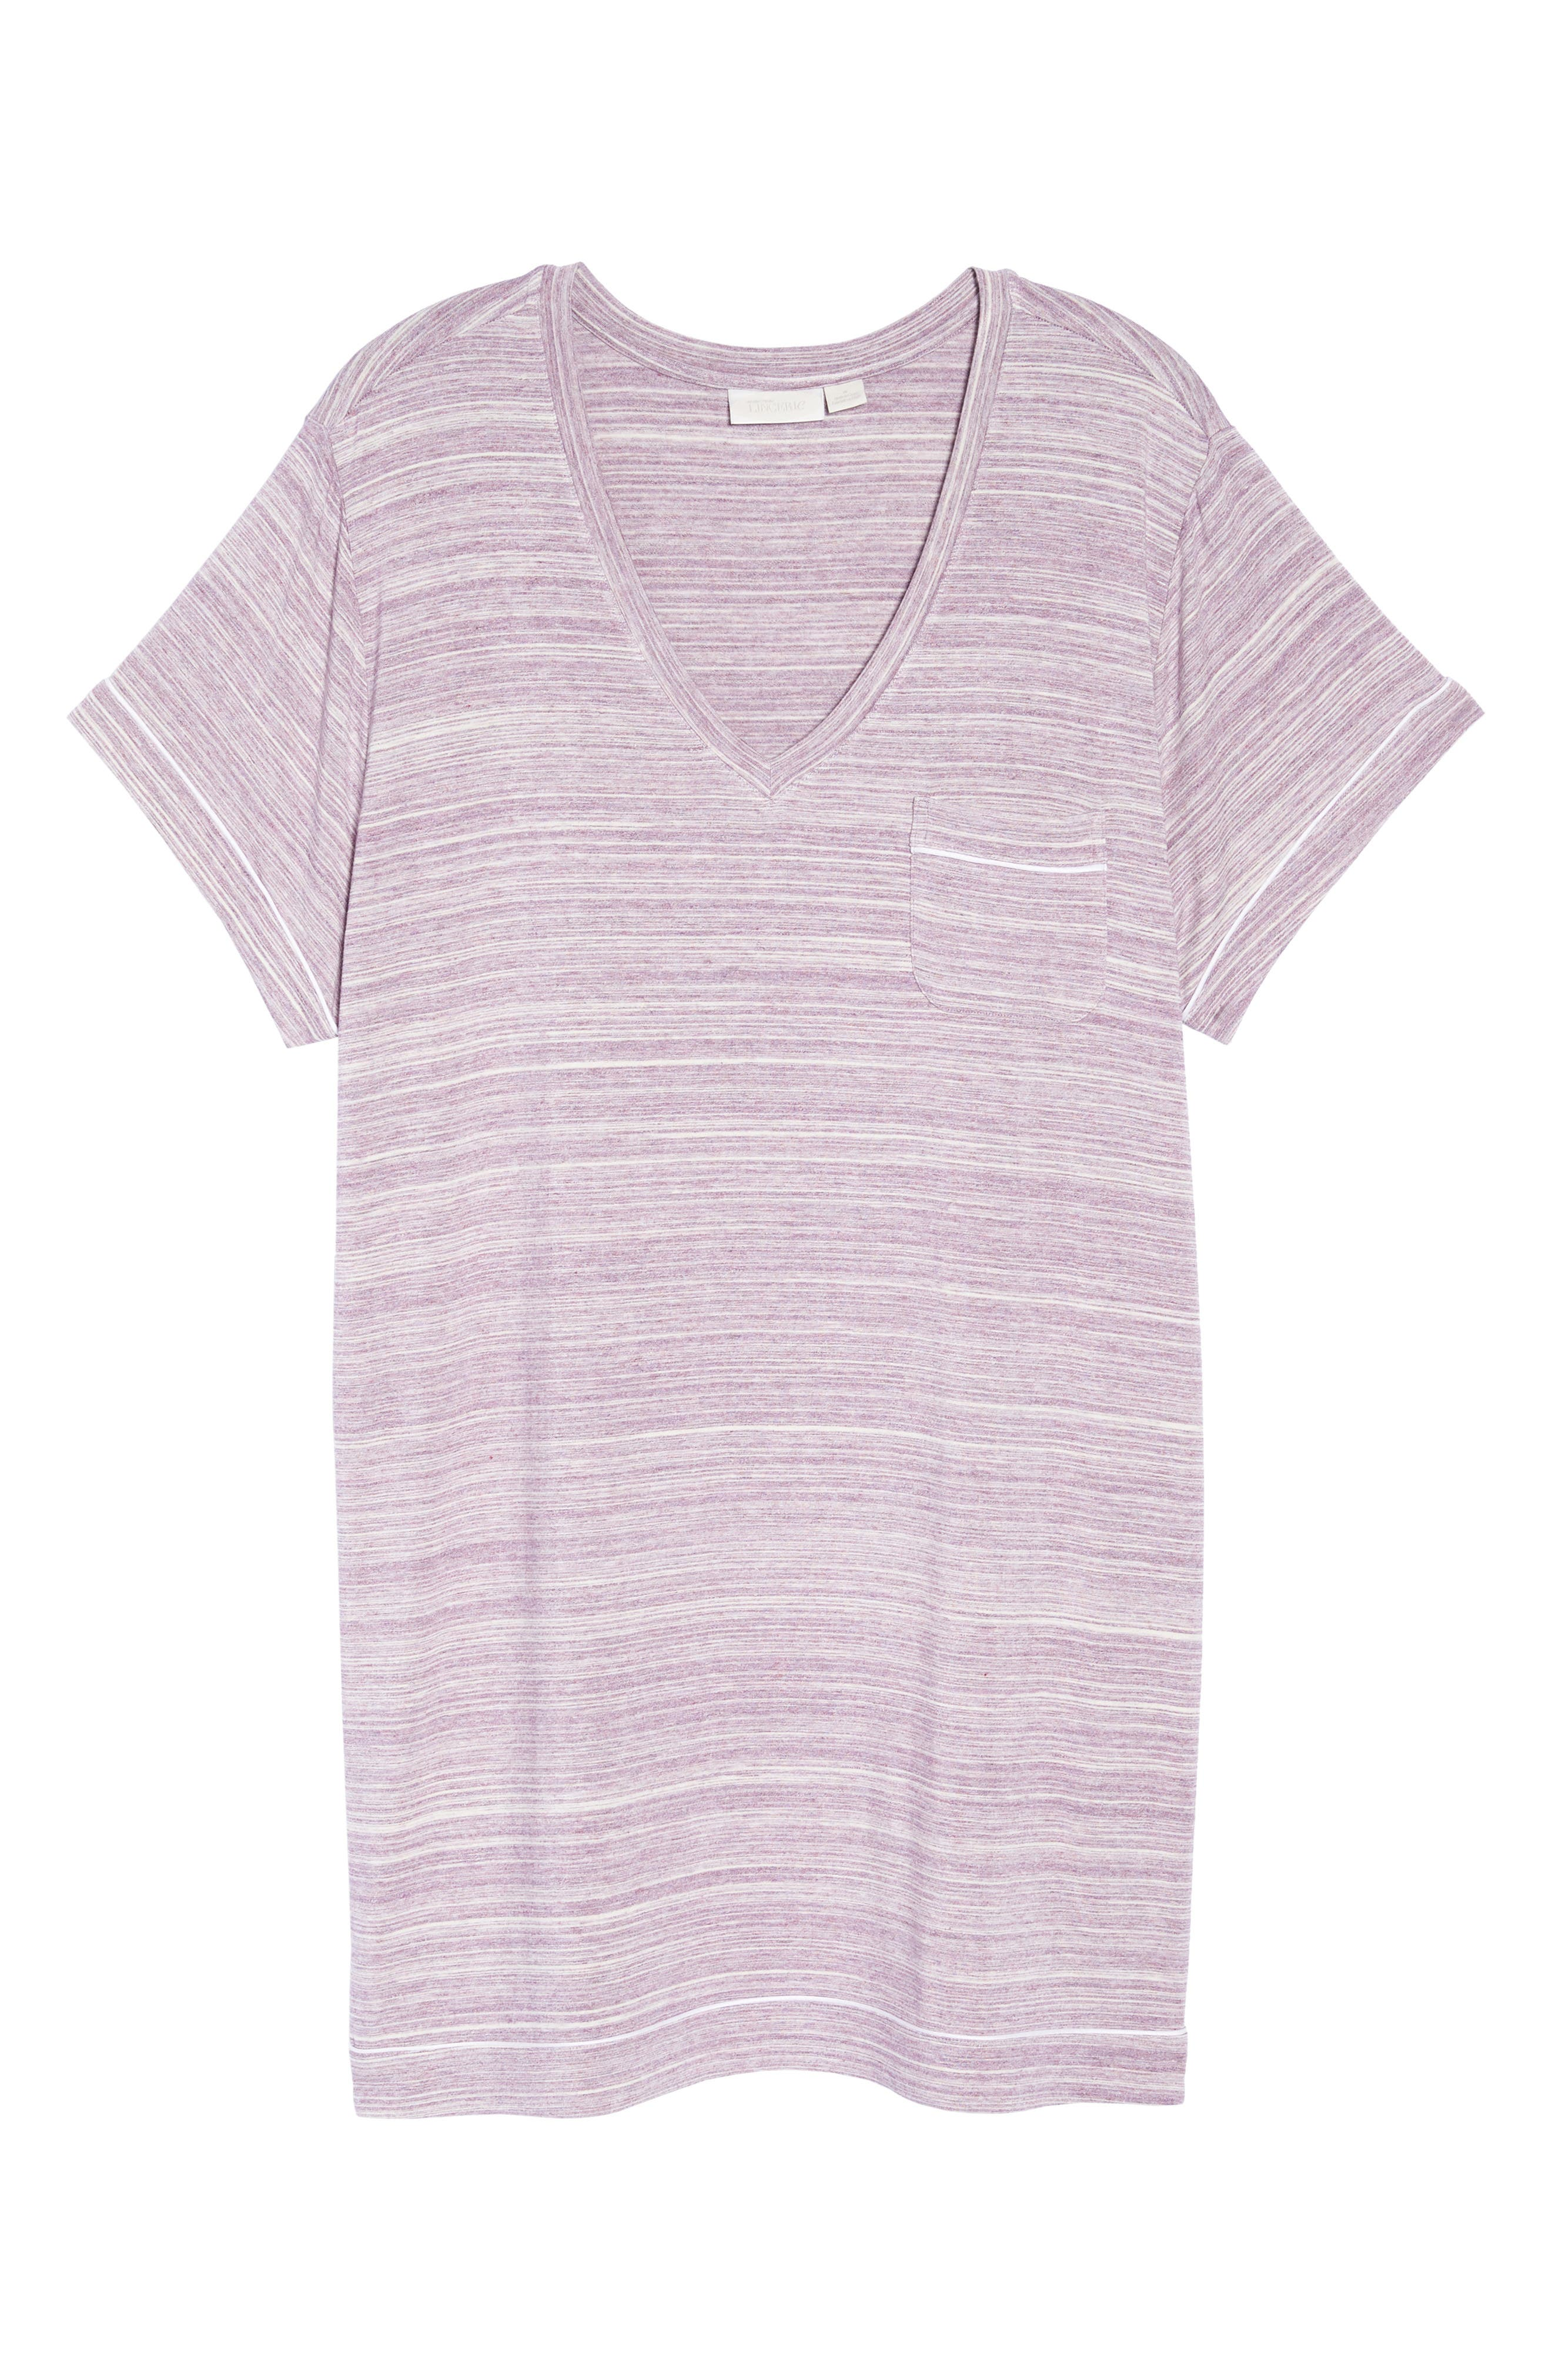 Moonlight V-Neck Nightshirt,                             Alternate thumbnail 6, color,                             Purple Spacedye